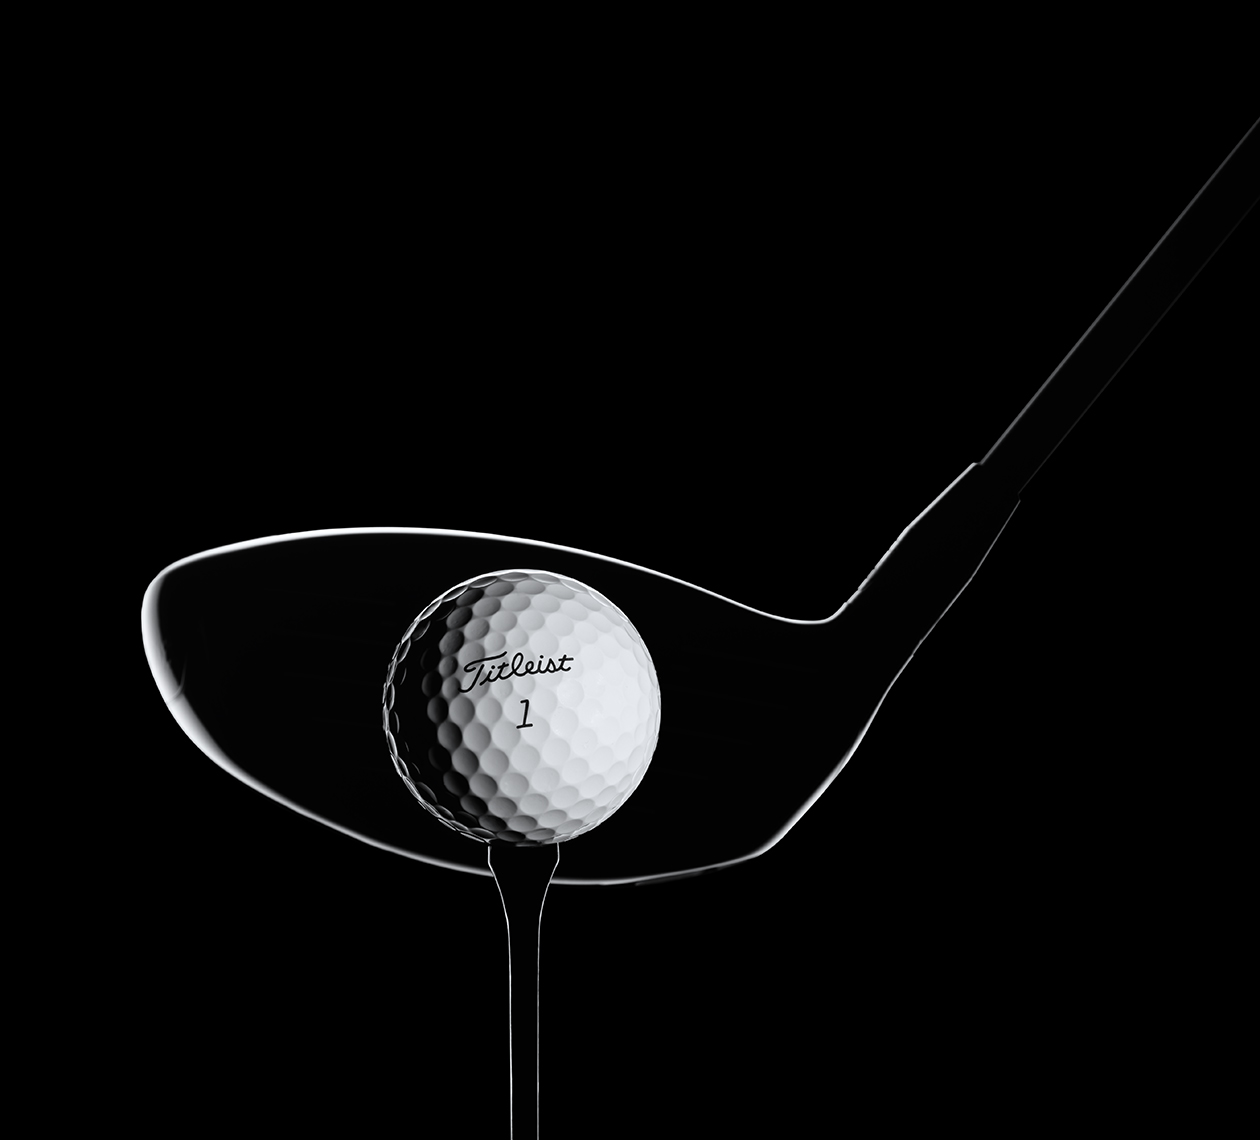 Titleist driver and ball